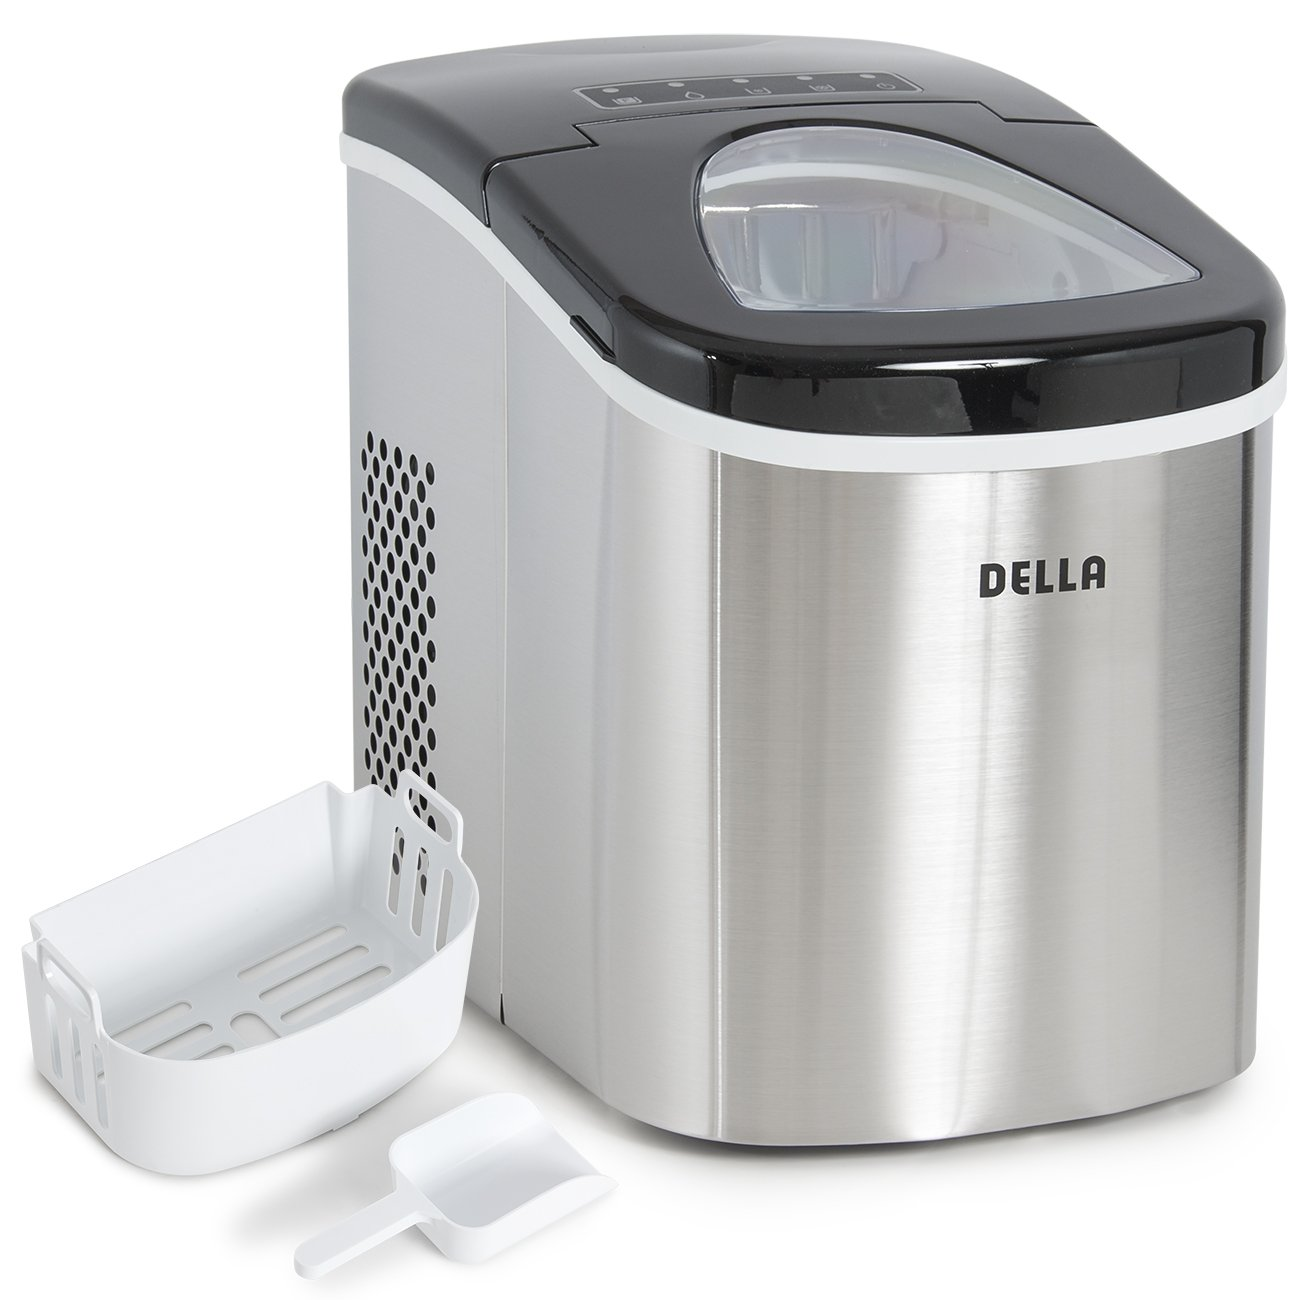 Della Portable Ice Maker Reviews